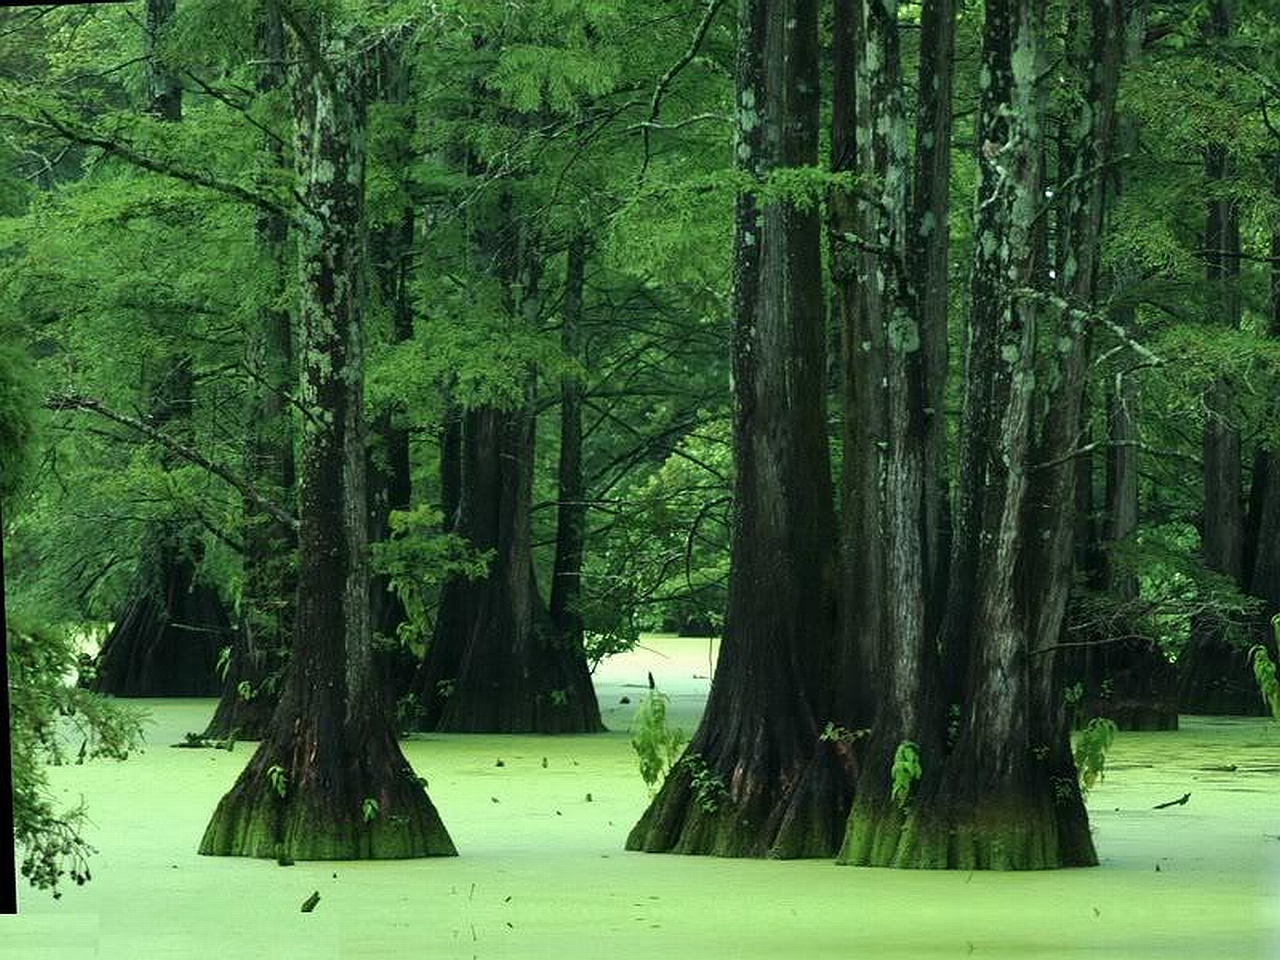 Swamp Computer Wallpapers Desktop Backgrounds 1280x960 1280x960